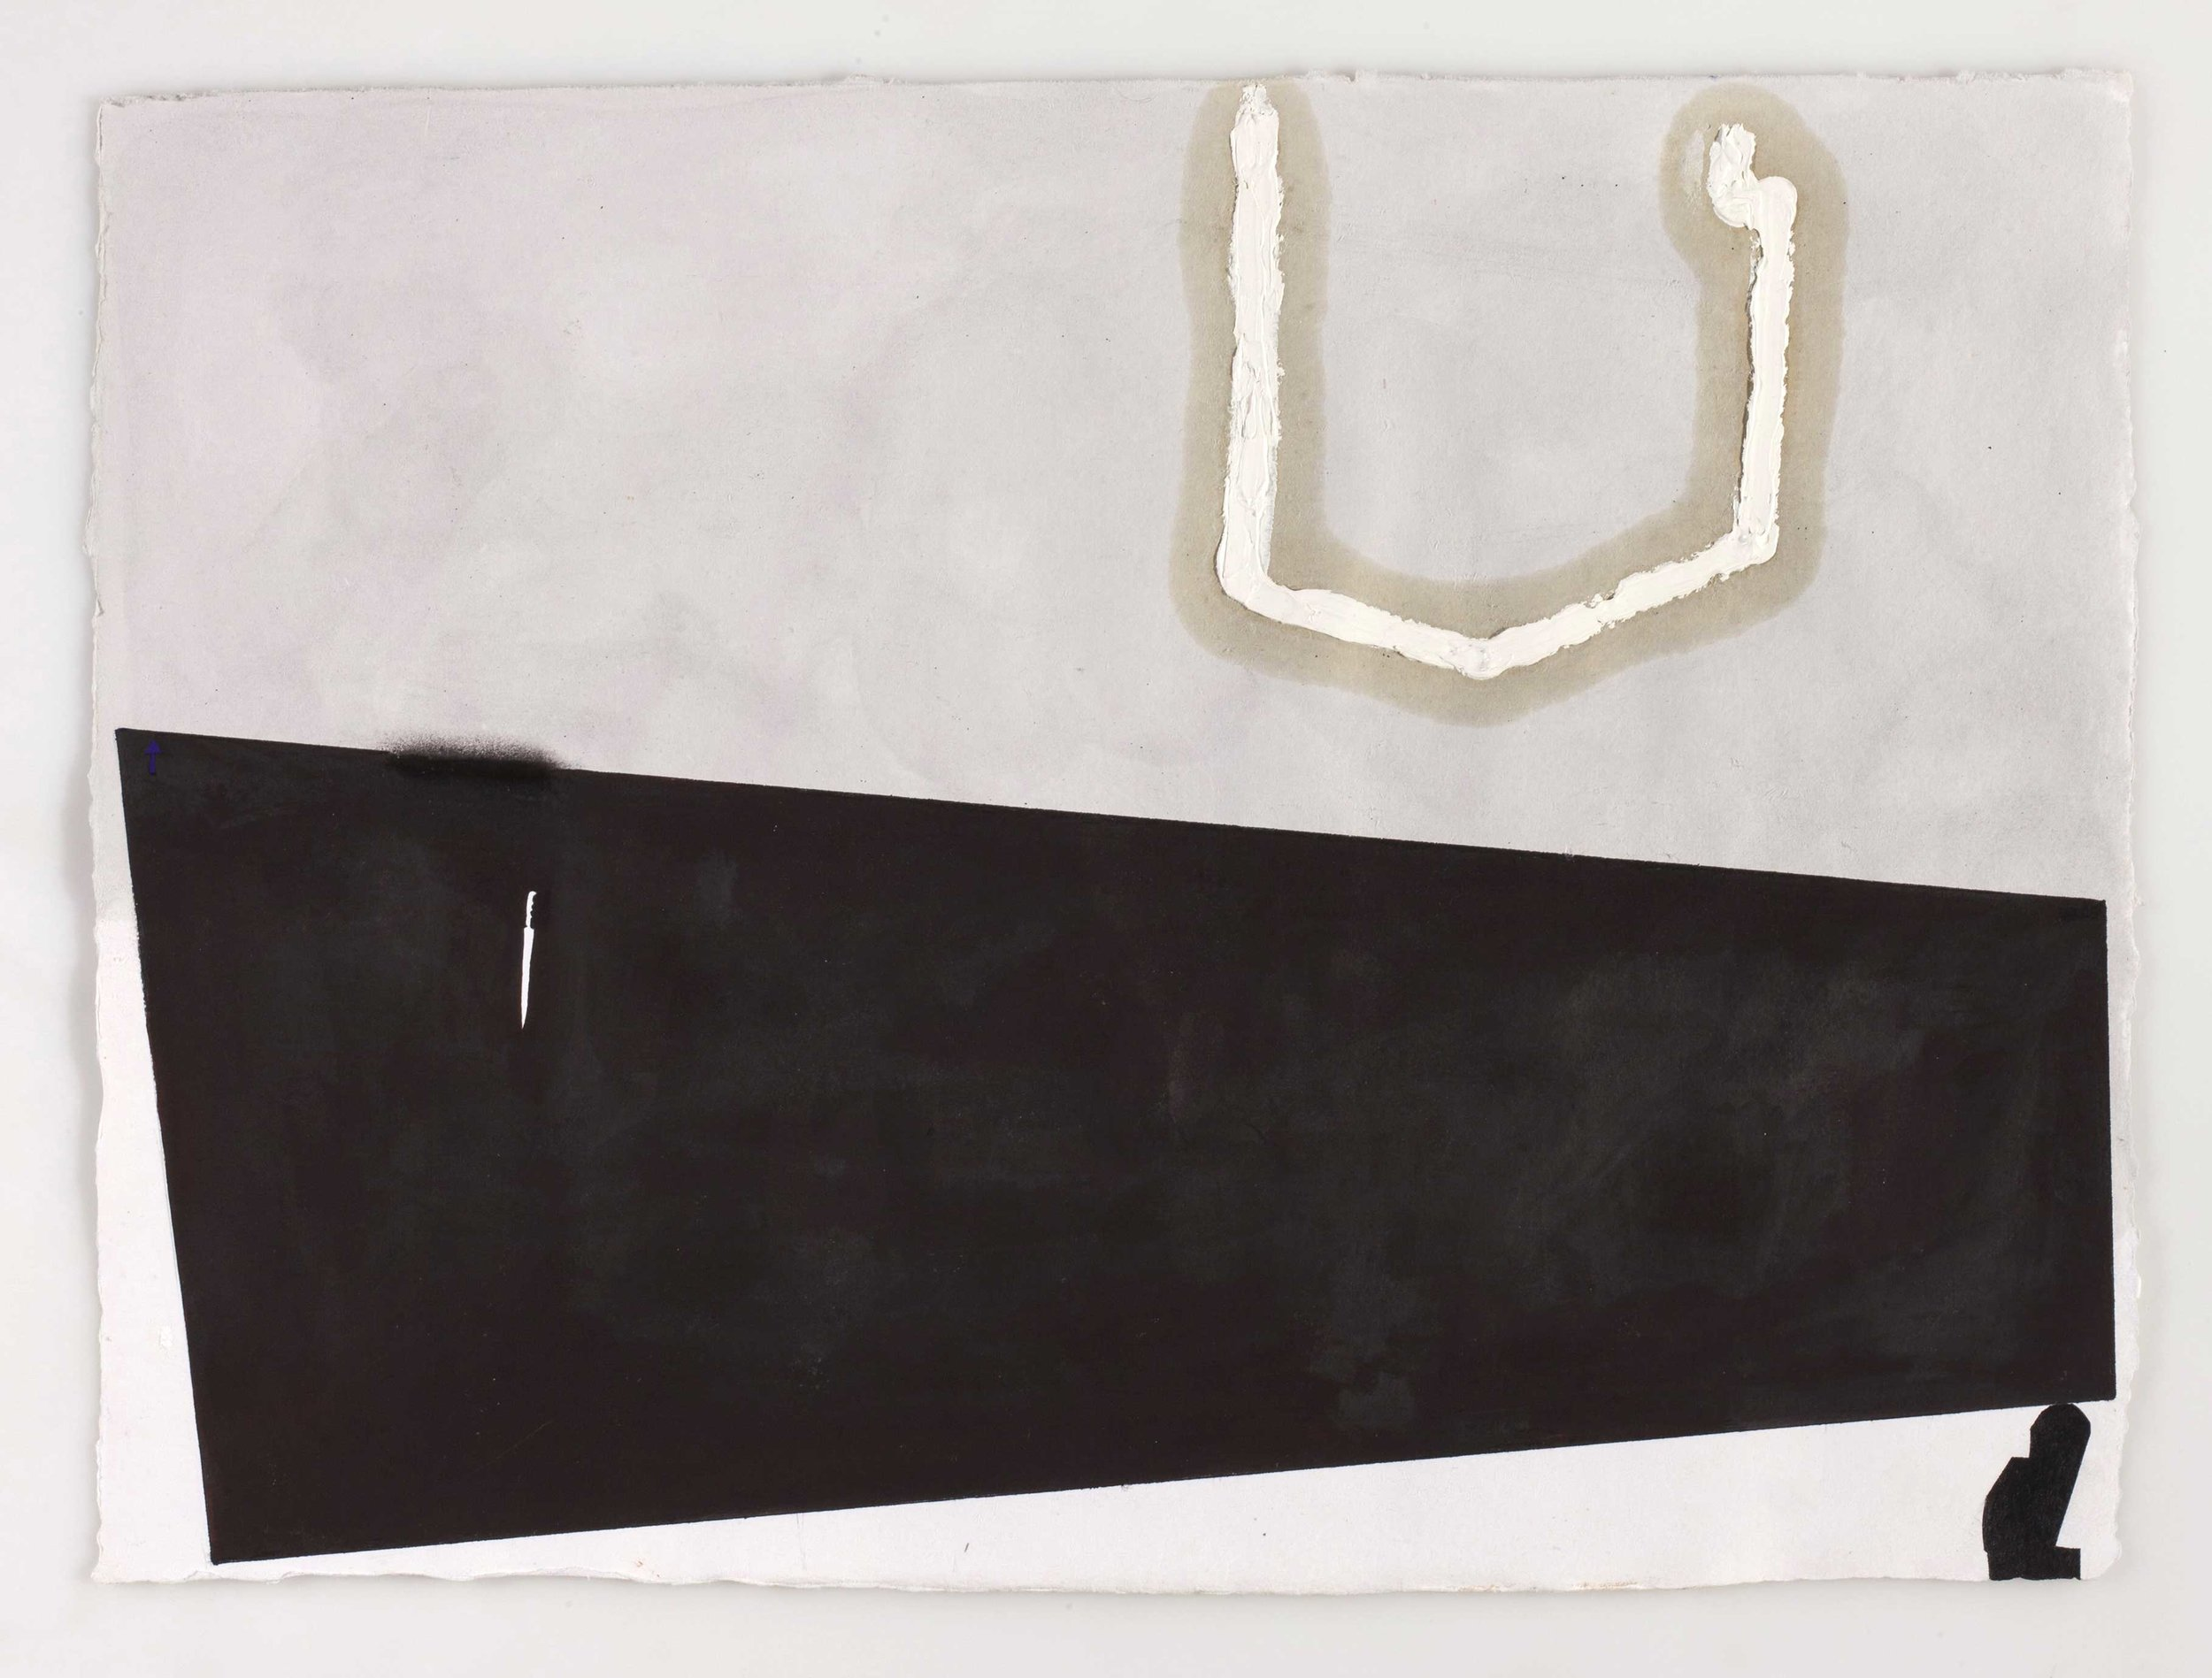 PaNi_Untitled6,-2014,-acrylic,-ink,-oil-on-handmade-paper,-28x38cm.jpg